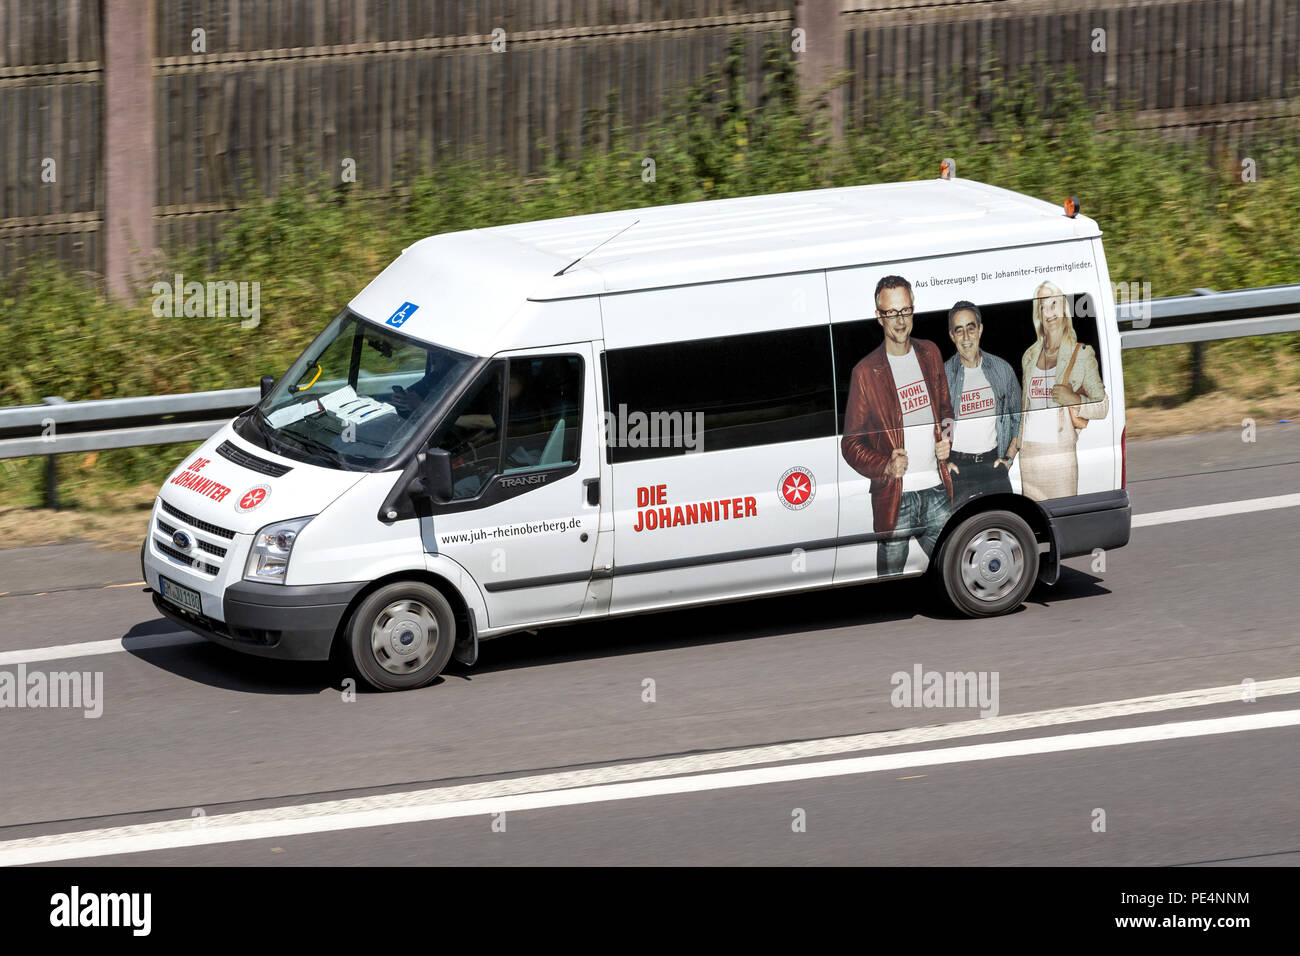 WIEHL, GERMANY - JUNE 30, 2018: Johanniter minibus on motorway. Die Johanniter is a voluntary humanitarian organisation. - Stock Image